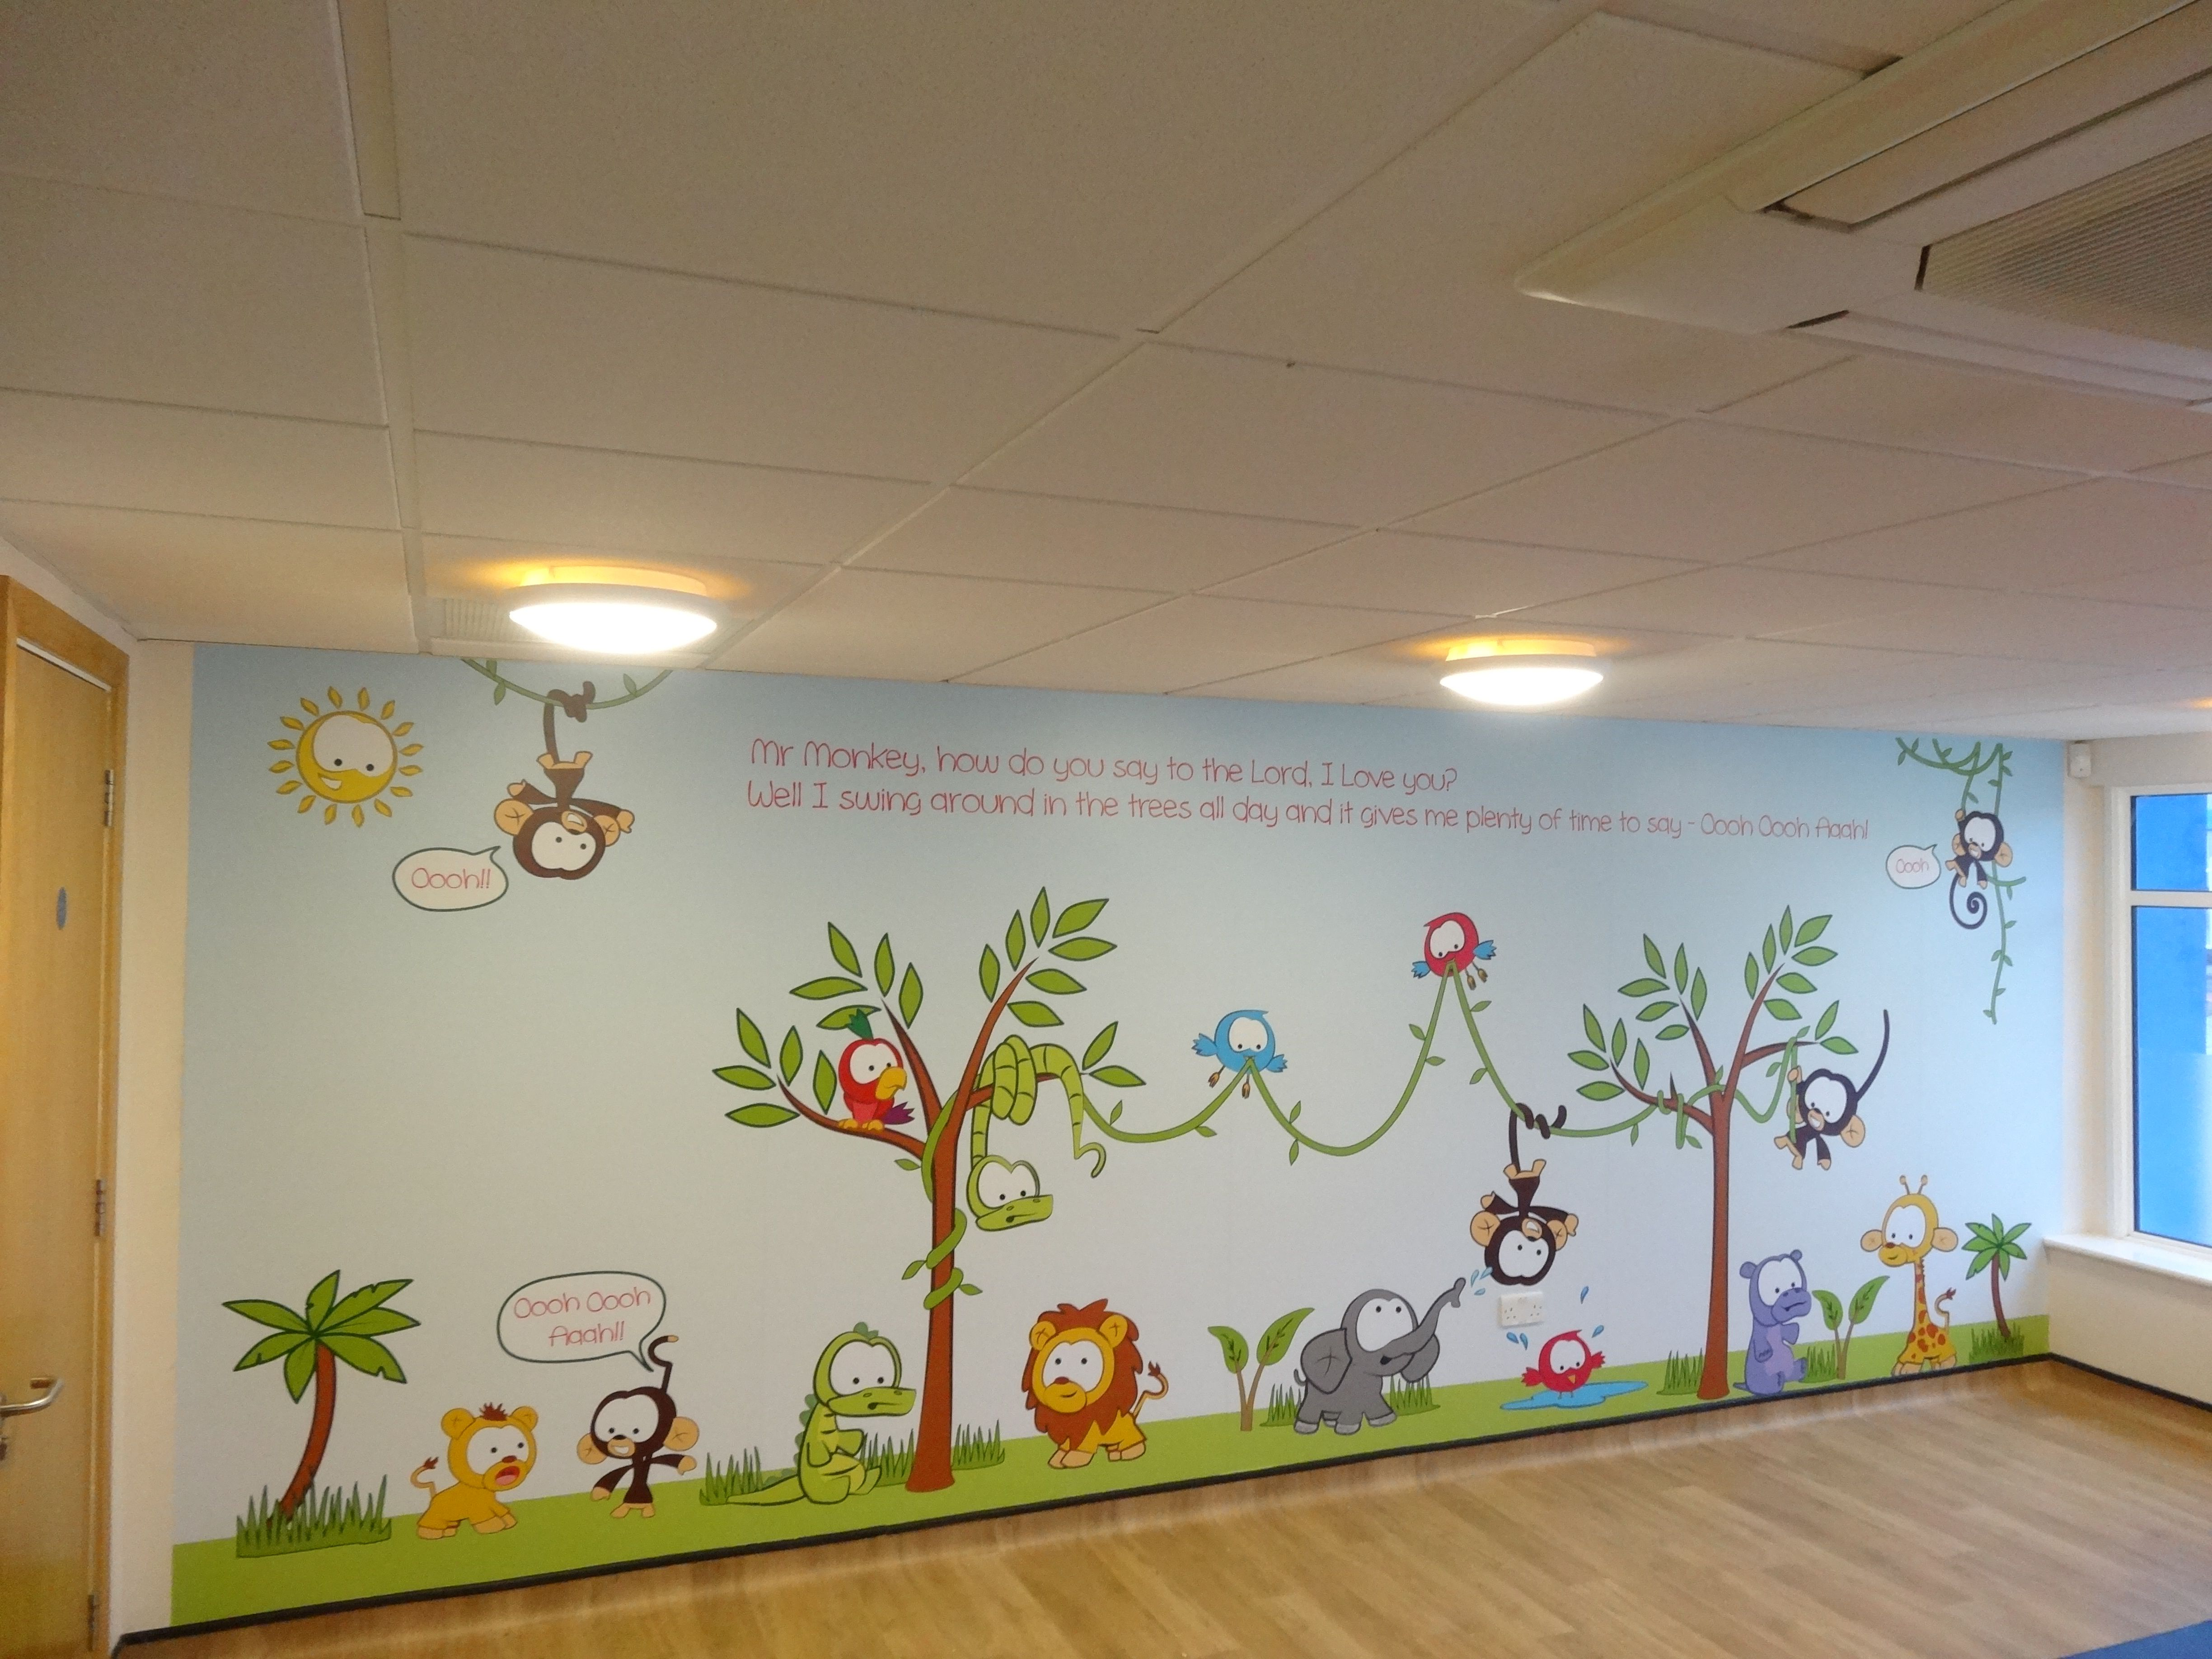 Vinylimpression Co Uk Custom Wall Murals And Wraps For Nurseries Child Care Centres